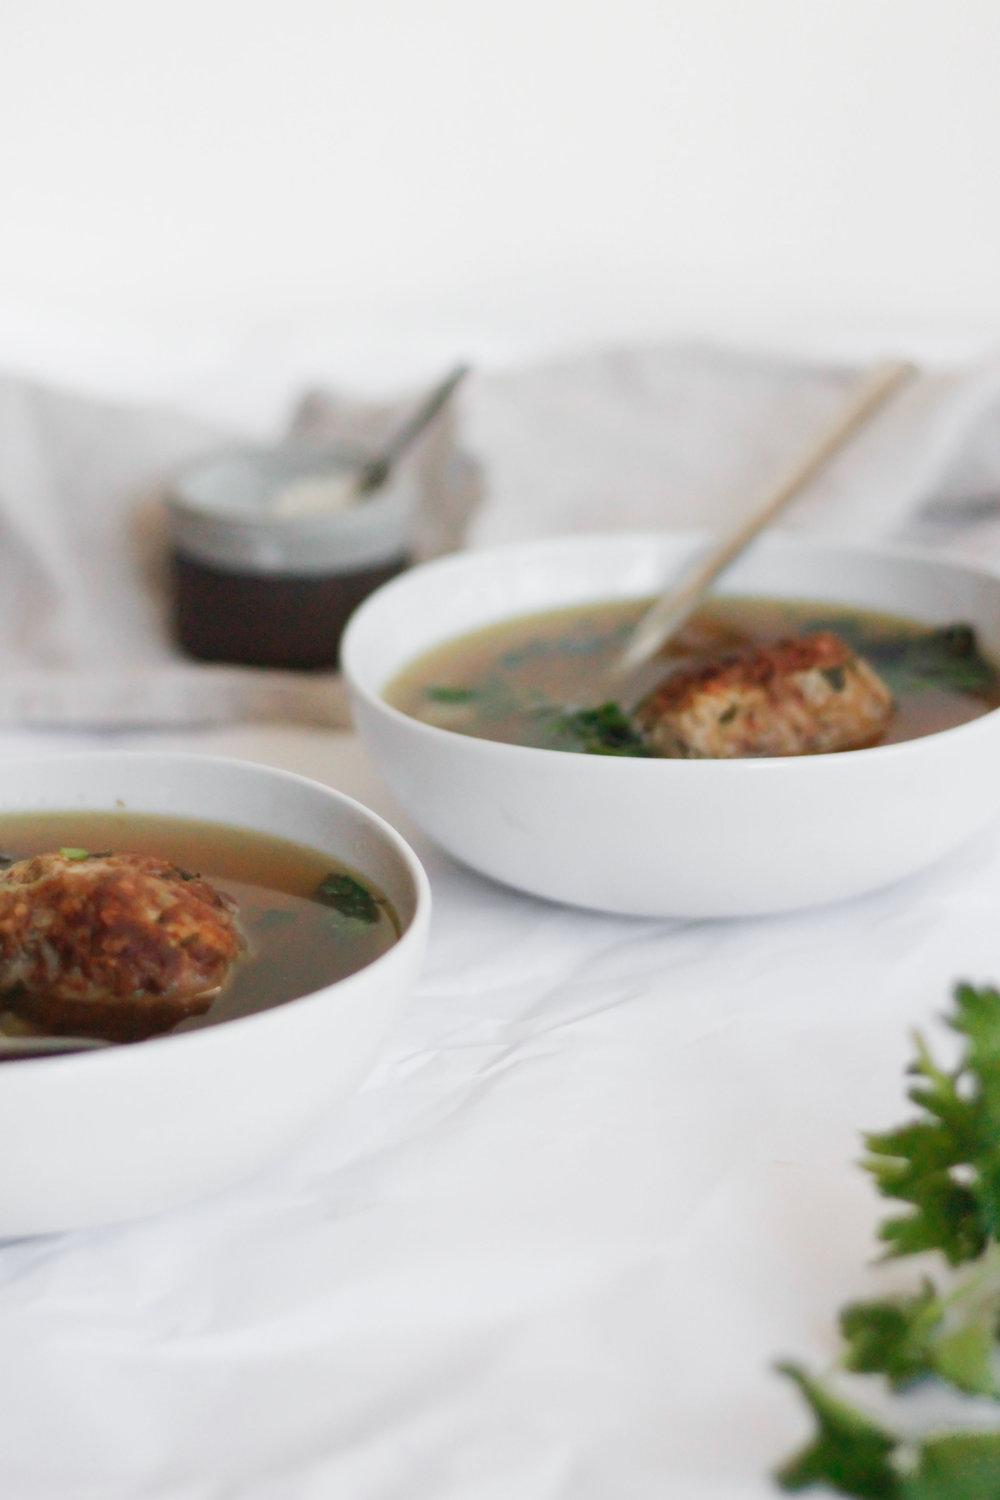 Italian wedding soup with giant meatballs